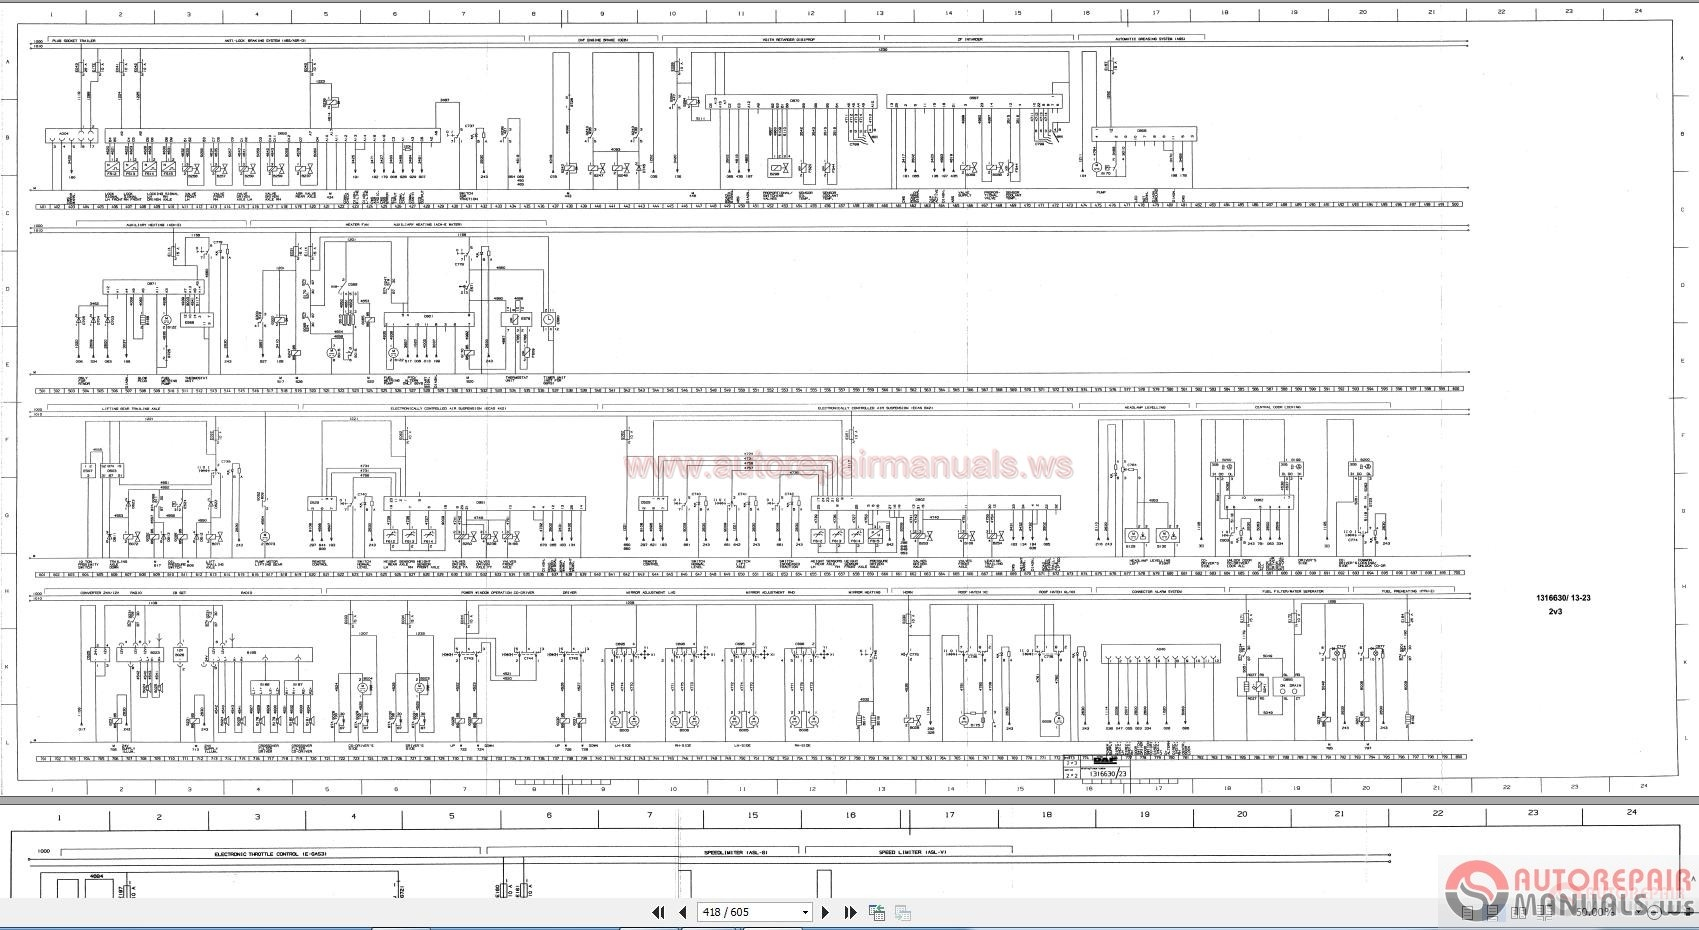 Chrysler 3 8 Liter Engine Diagram Guide And Troubleshooting Of Town Country Images Gallery